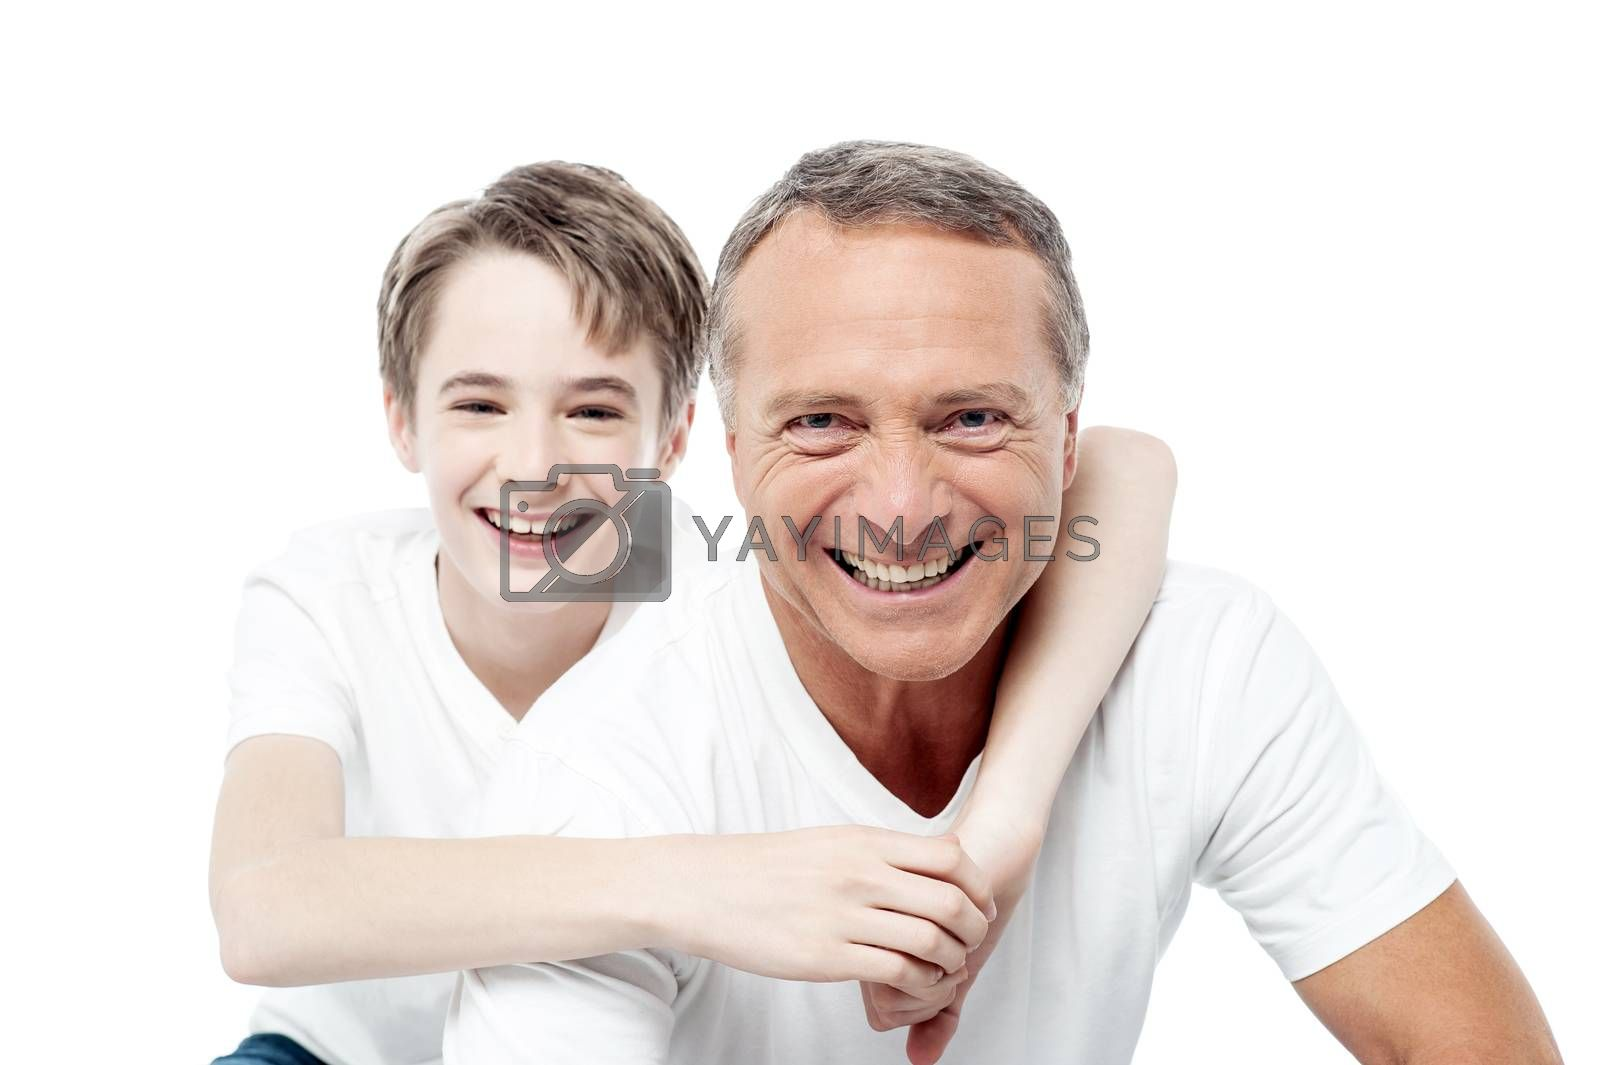 Father with son happy smiling over white background